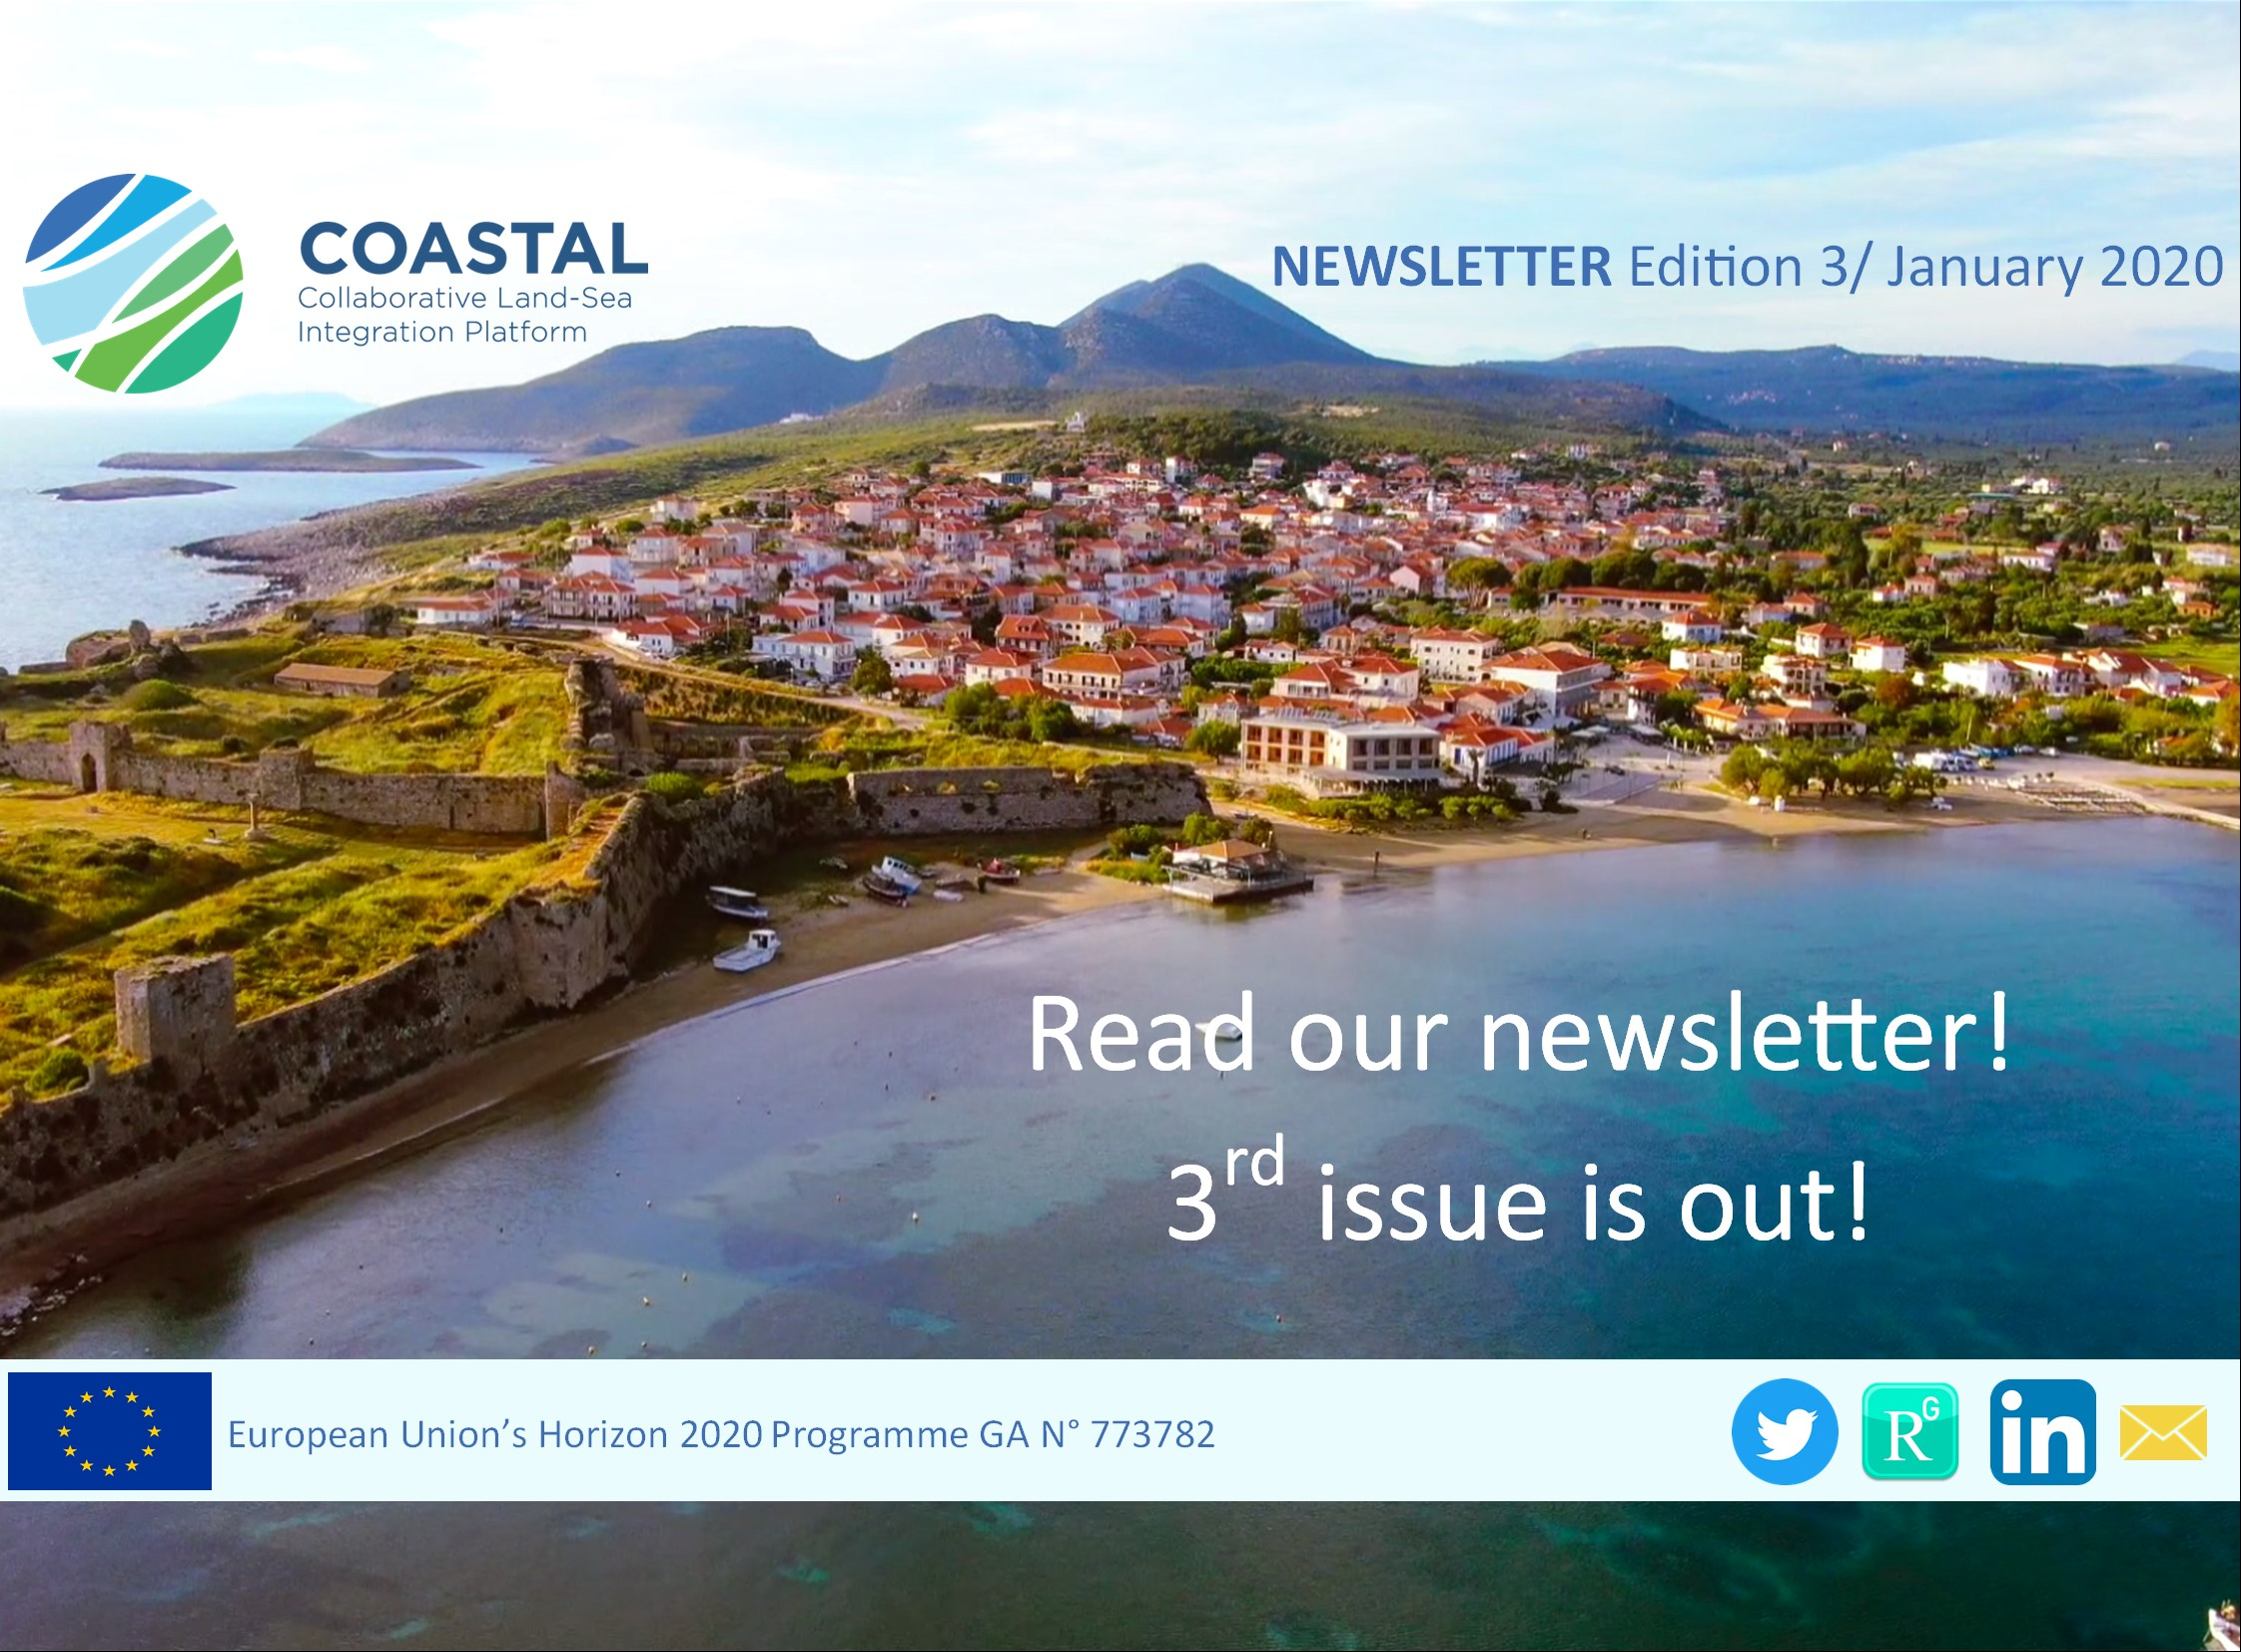 COASTAL's 3rd Newsletter is out!